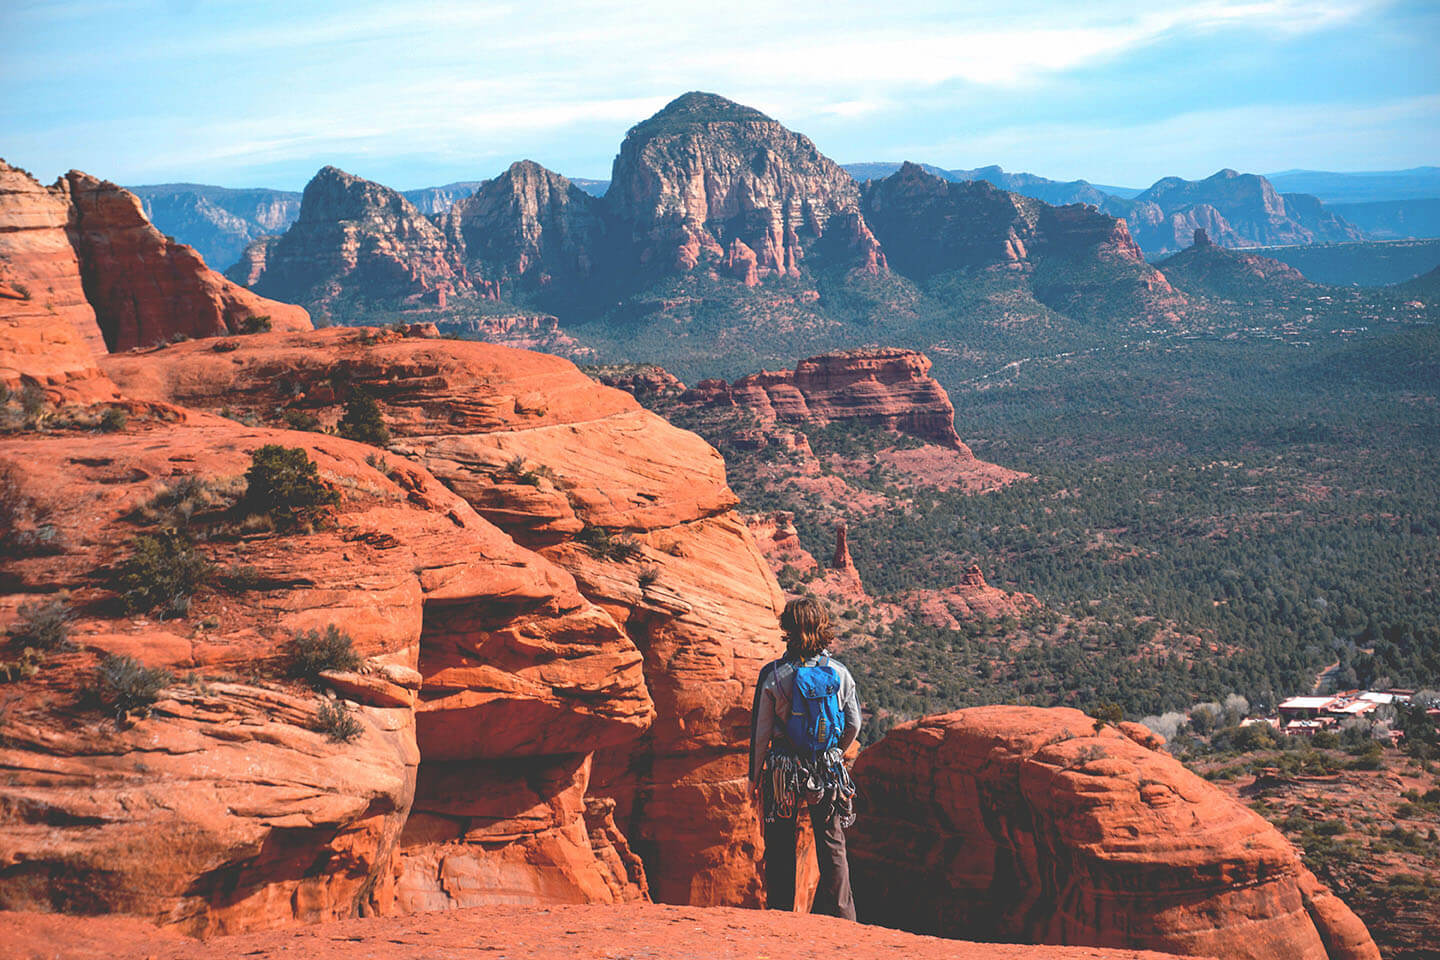 Wander Design Co. brand and website design studio based in Sedona, Arizona.